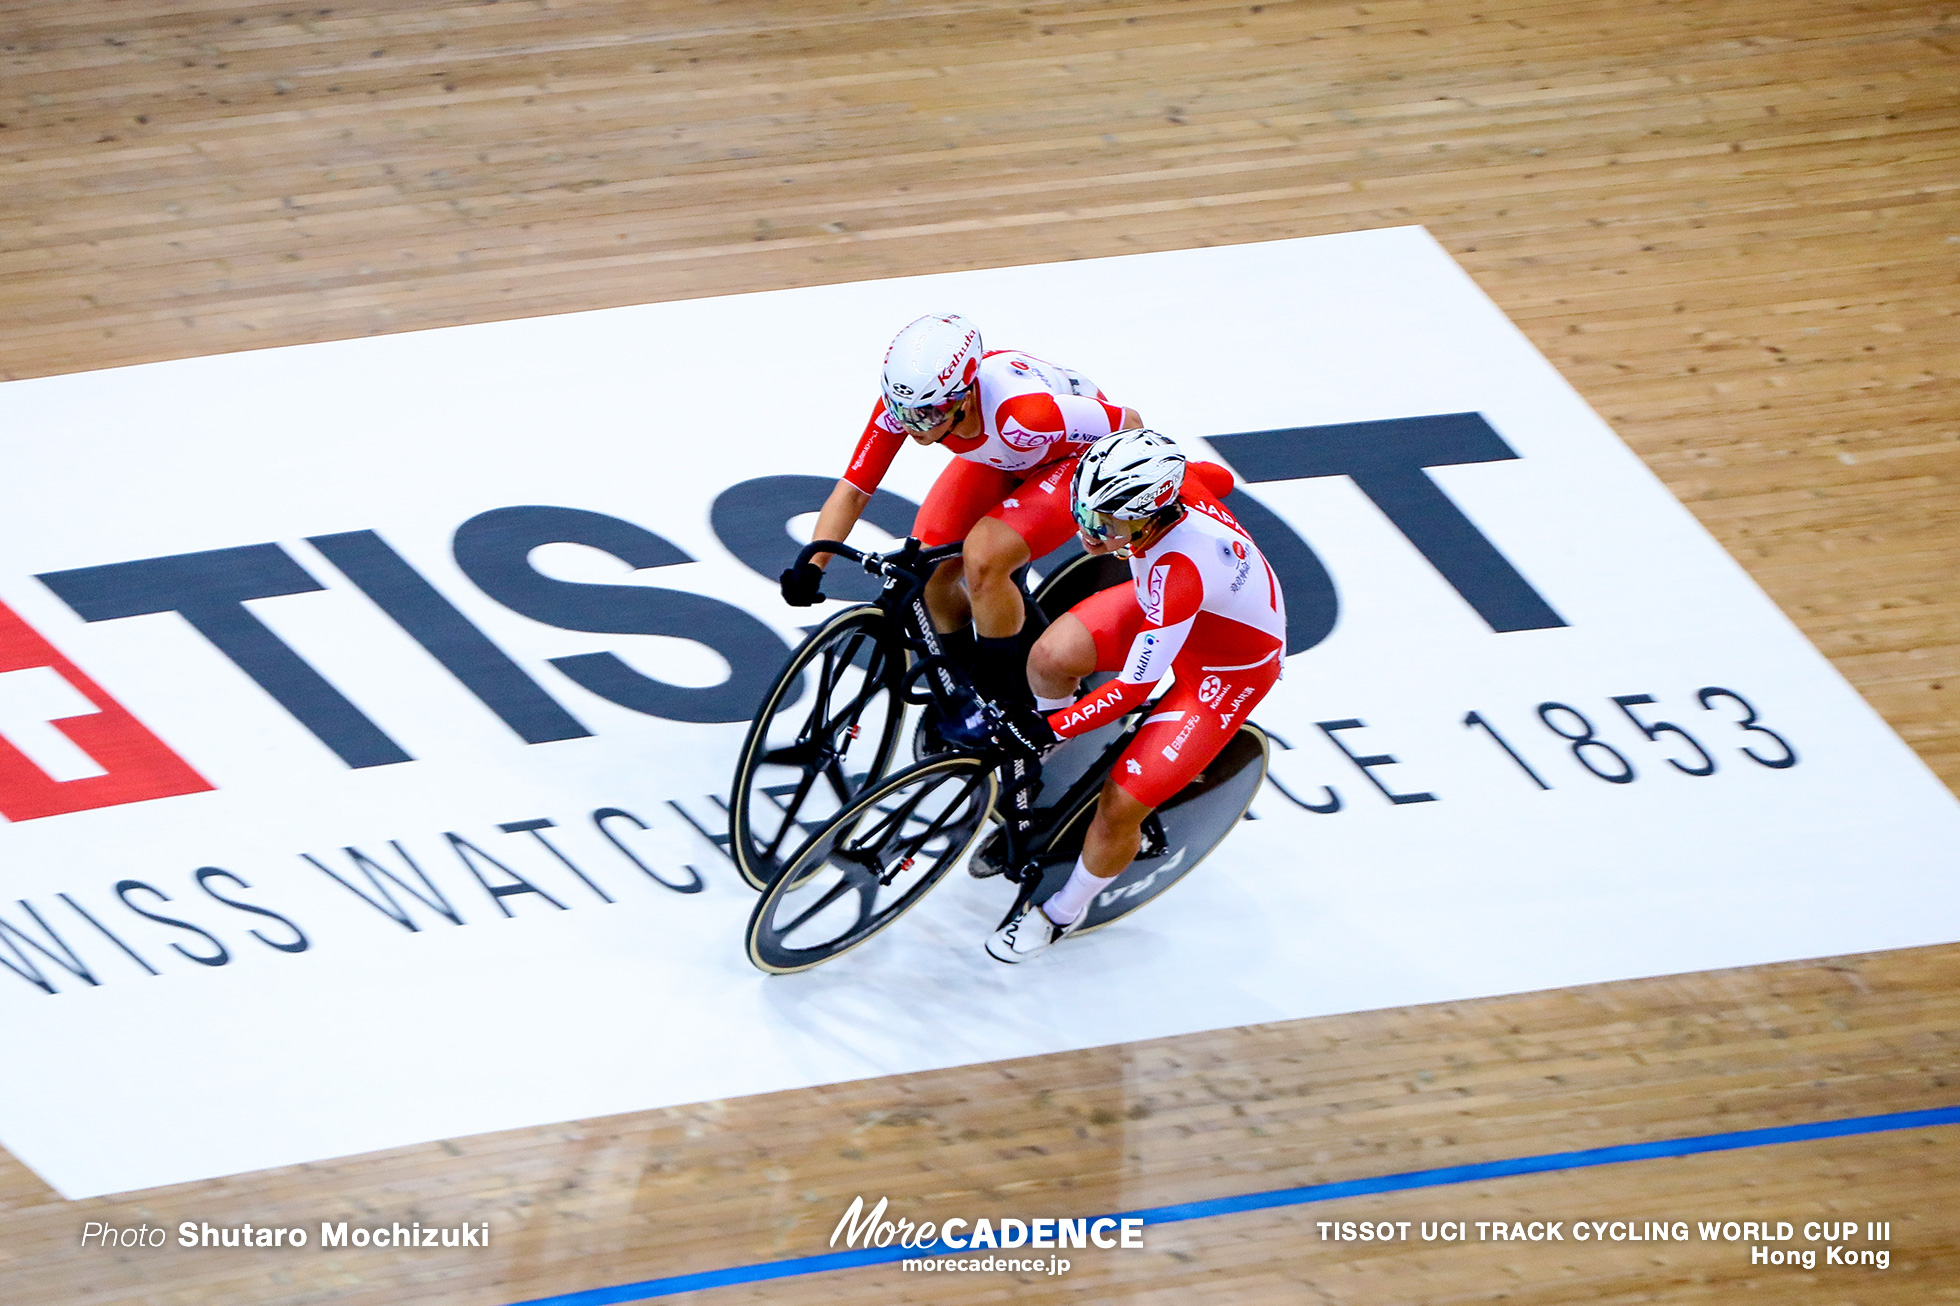 Women's Madison / TISSOT UCI TRACK CYCLING WORLD CUP III, Hong Kong